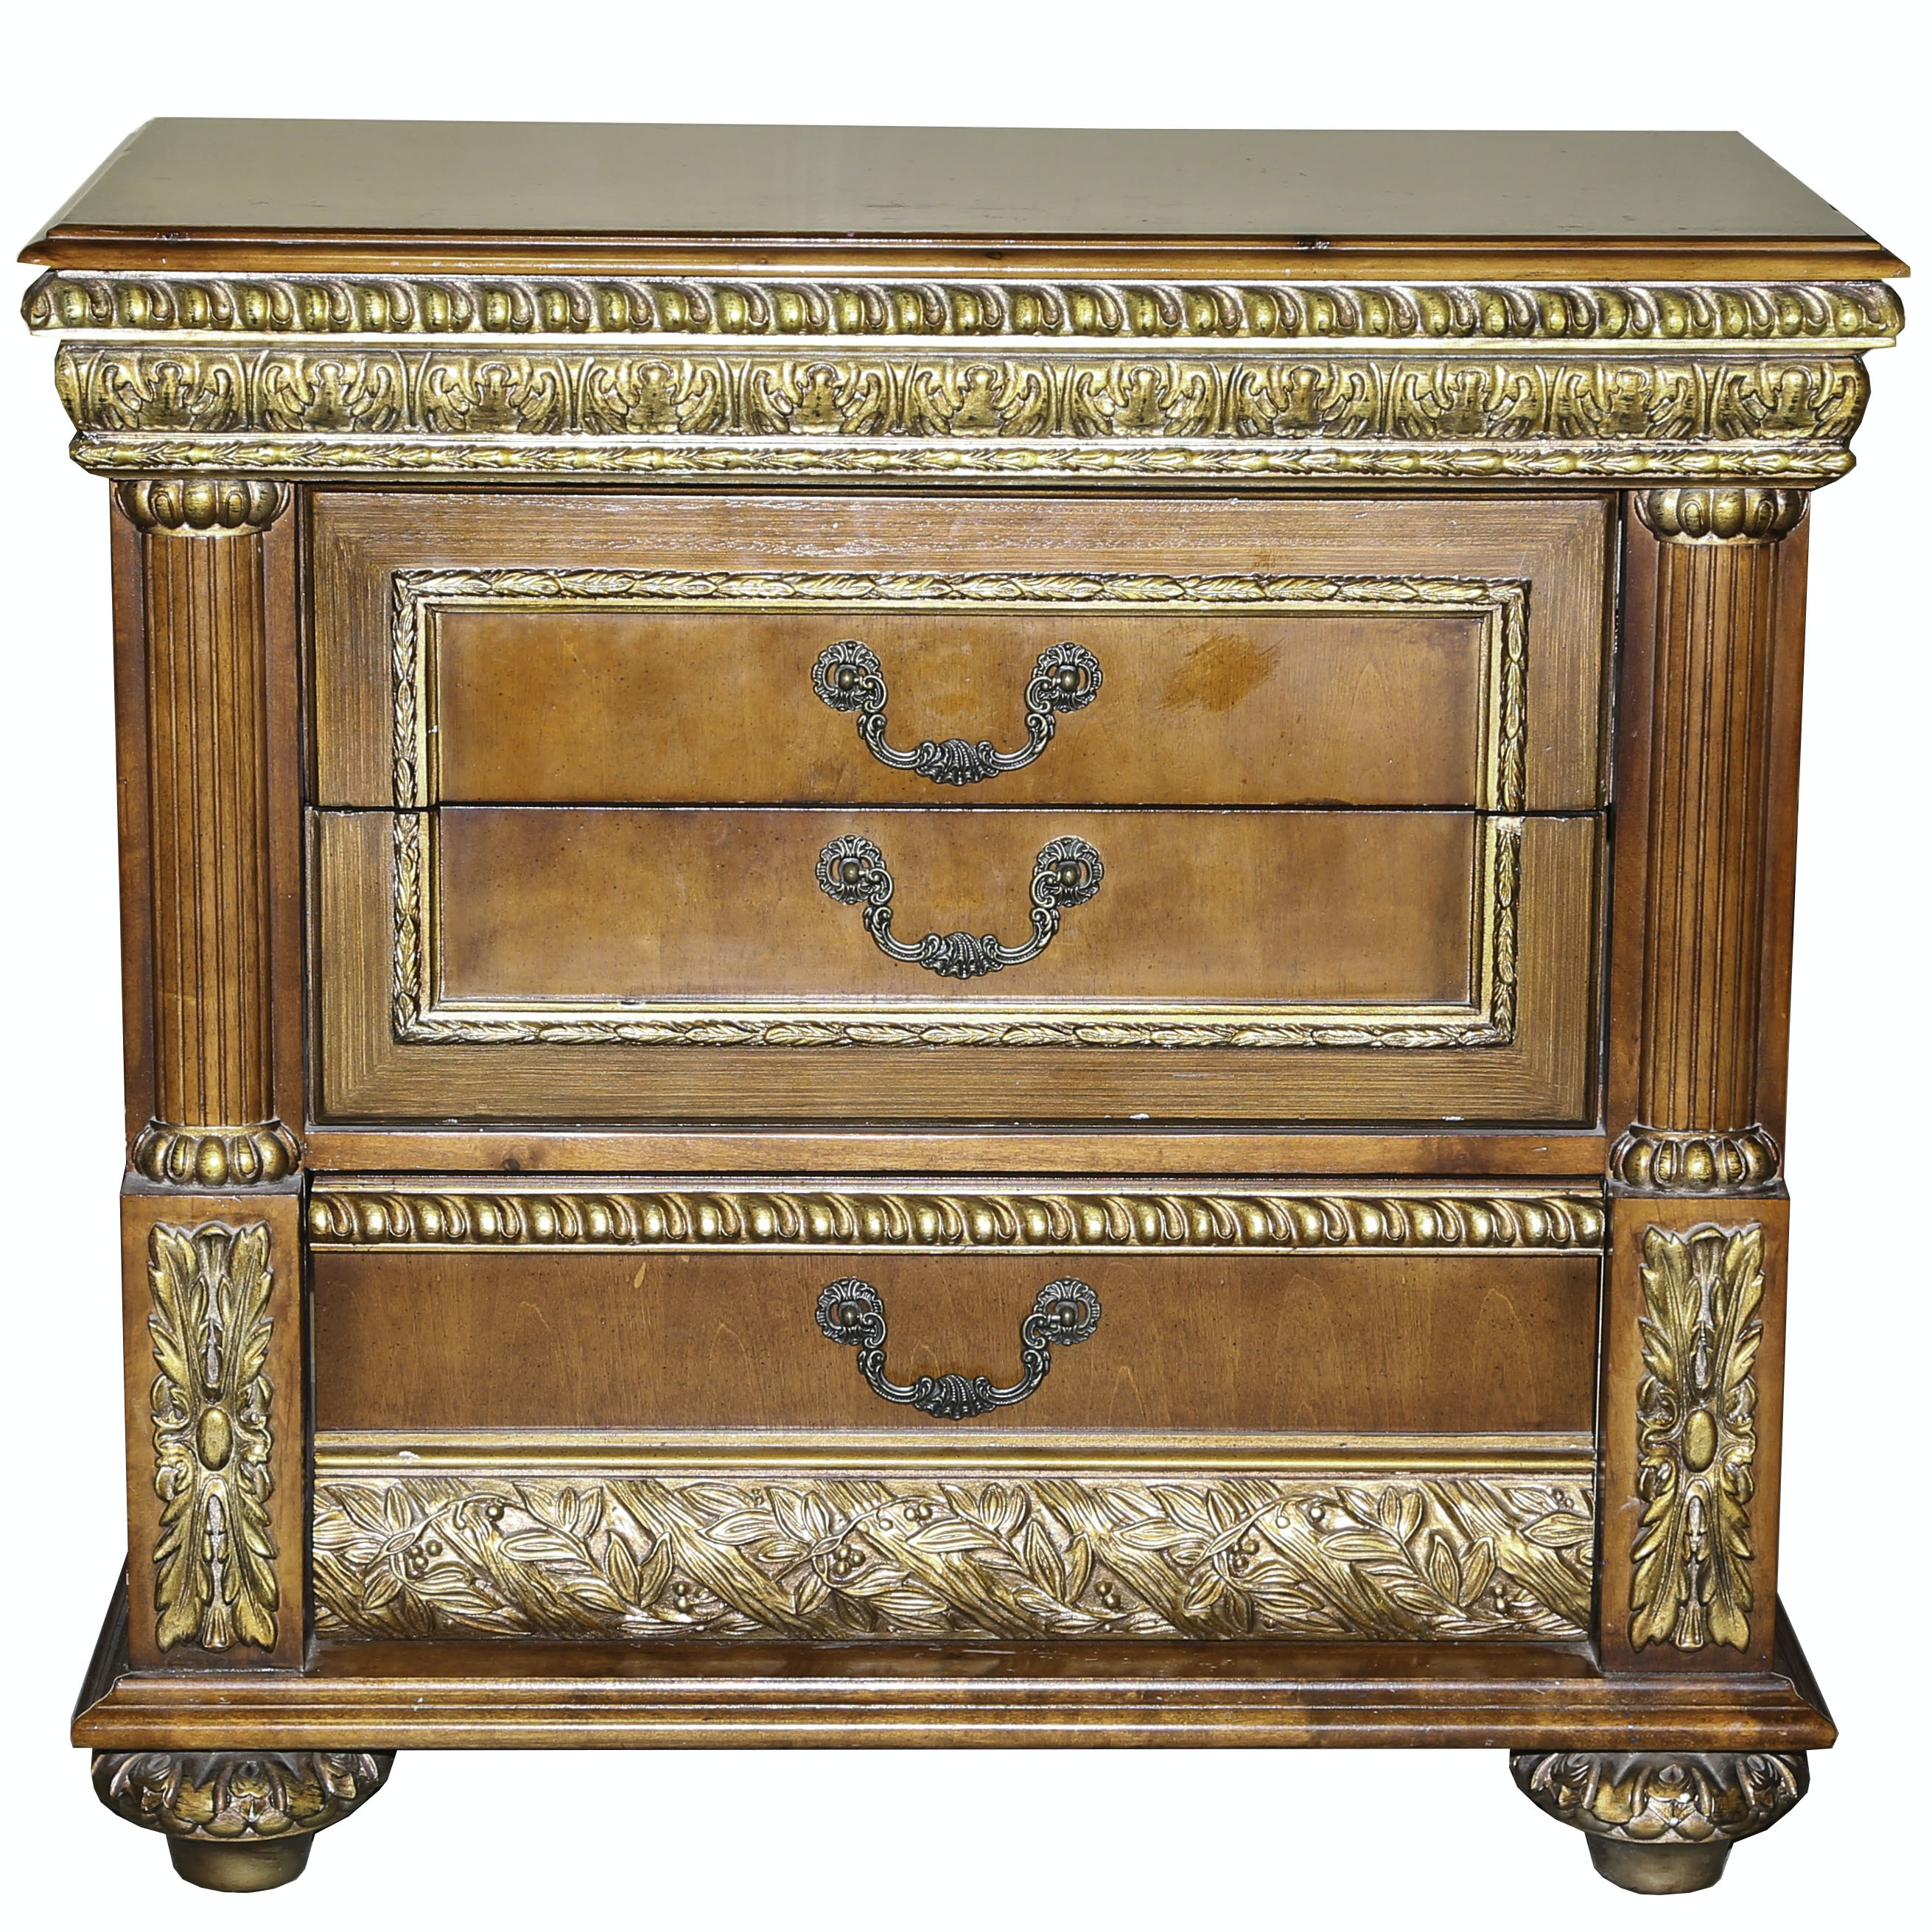 Italianate Bedside Chest of Drawers